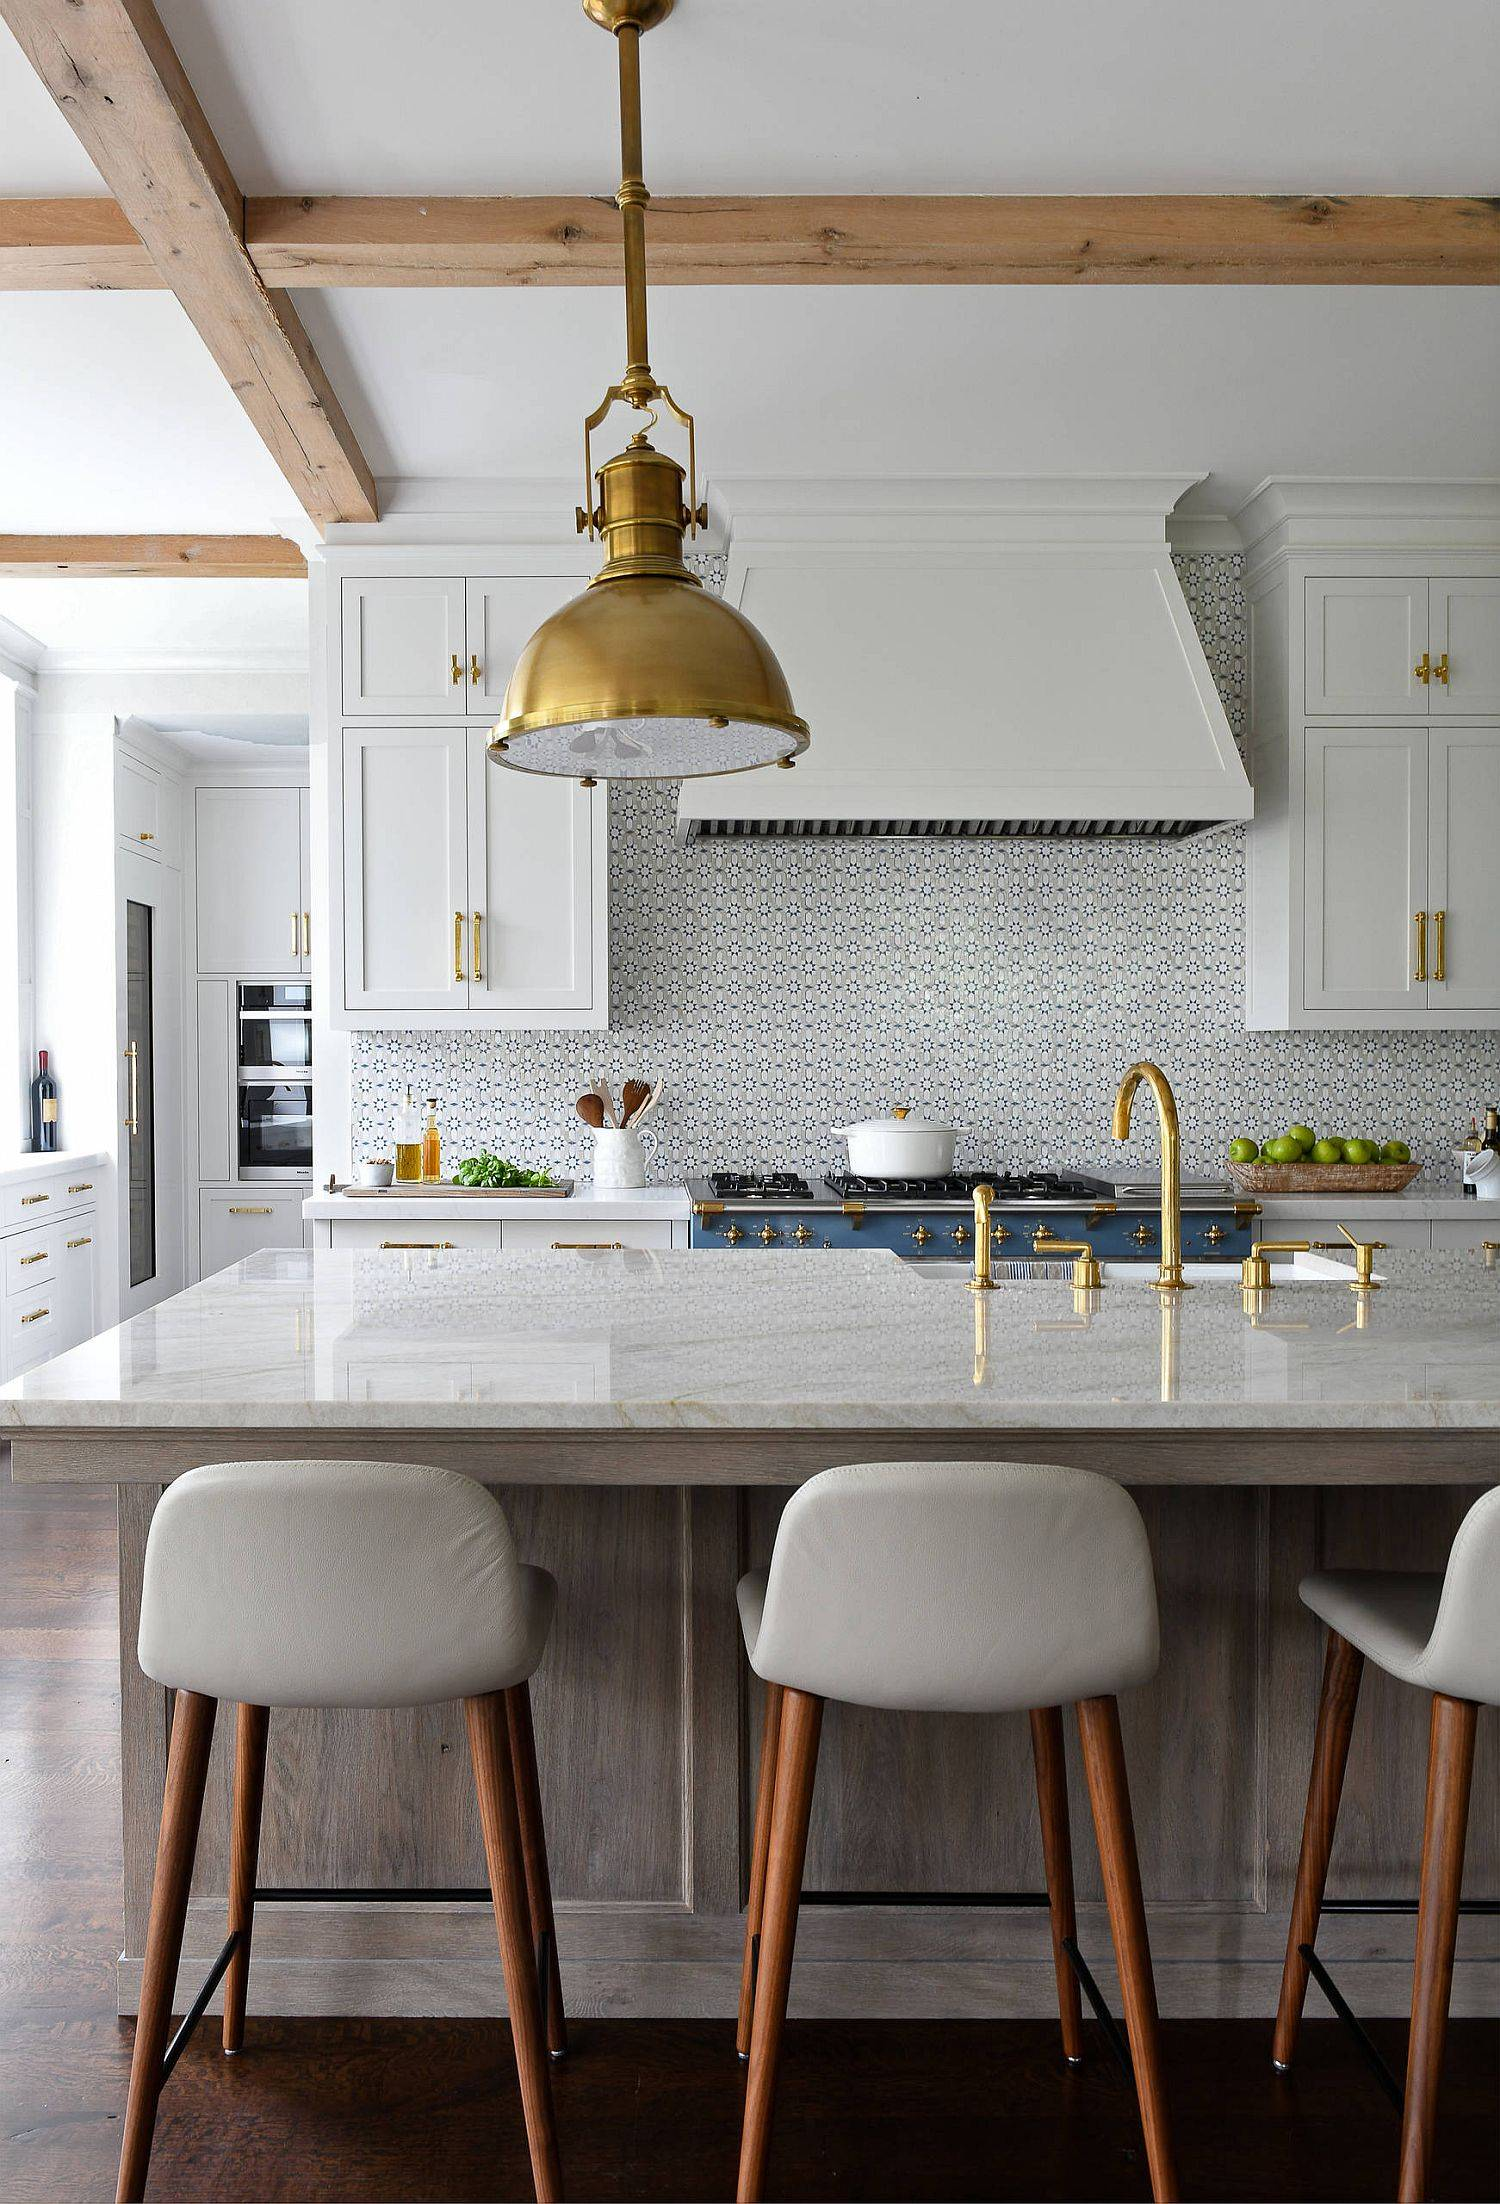 Bring-golden-glint-to-the-kitchen-using-fittings-and-pendants-42315